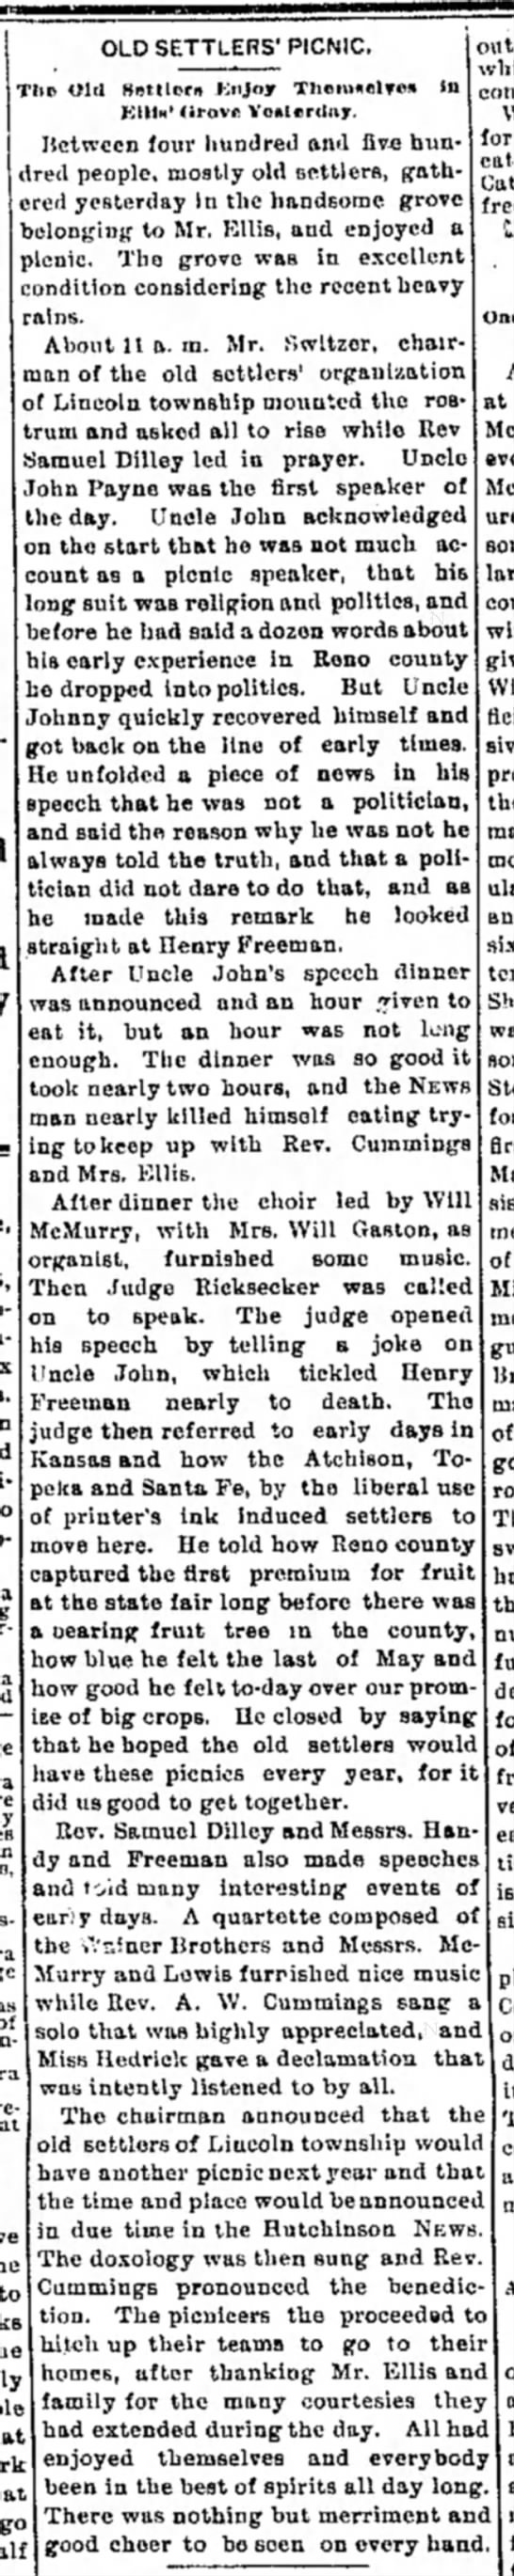 1895 Old Settler's Picnic 13 June 1895 Hutch News P6 -